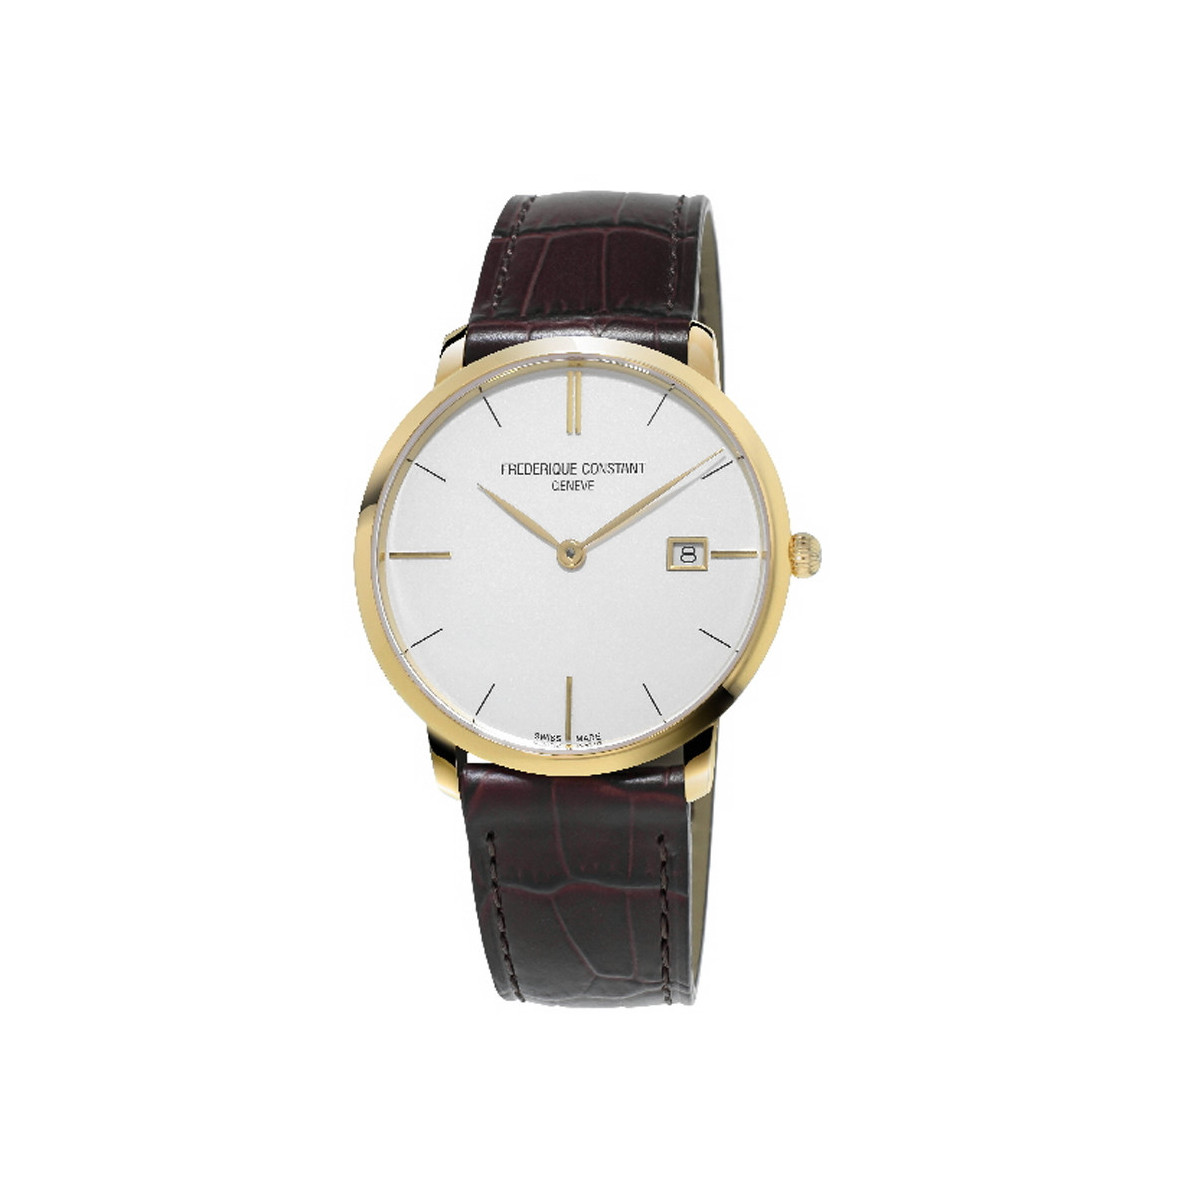 FREDERIQUE CONSTANT SLIMLINE GOLD PLATED